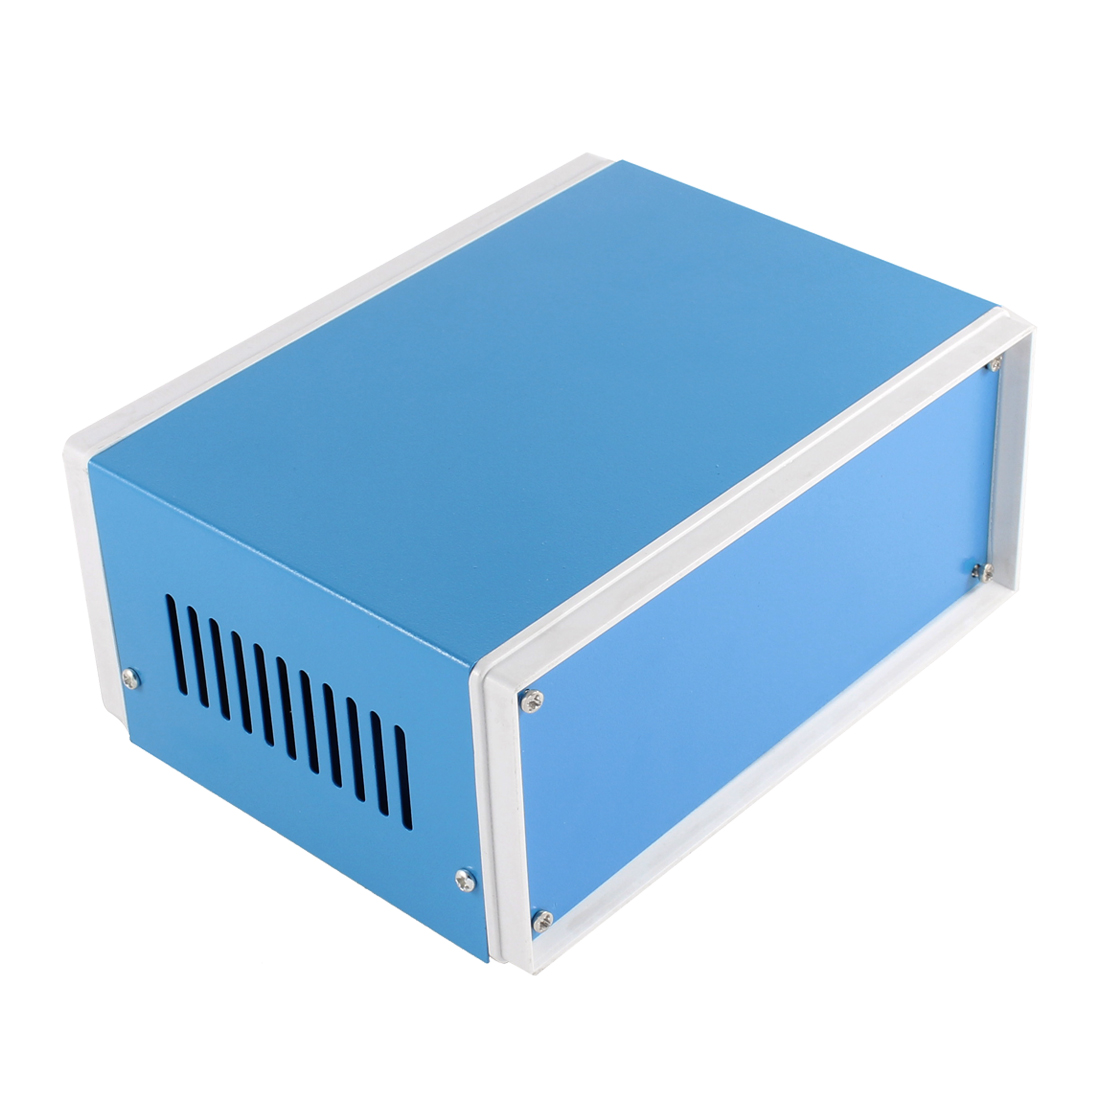 Blue Metal Electronic Project Box Enclosure Case 170 x 130 x 74mm